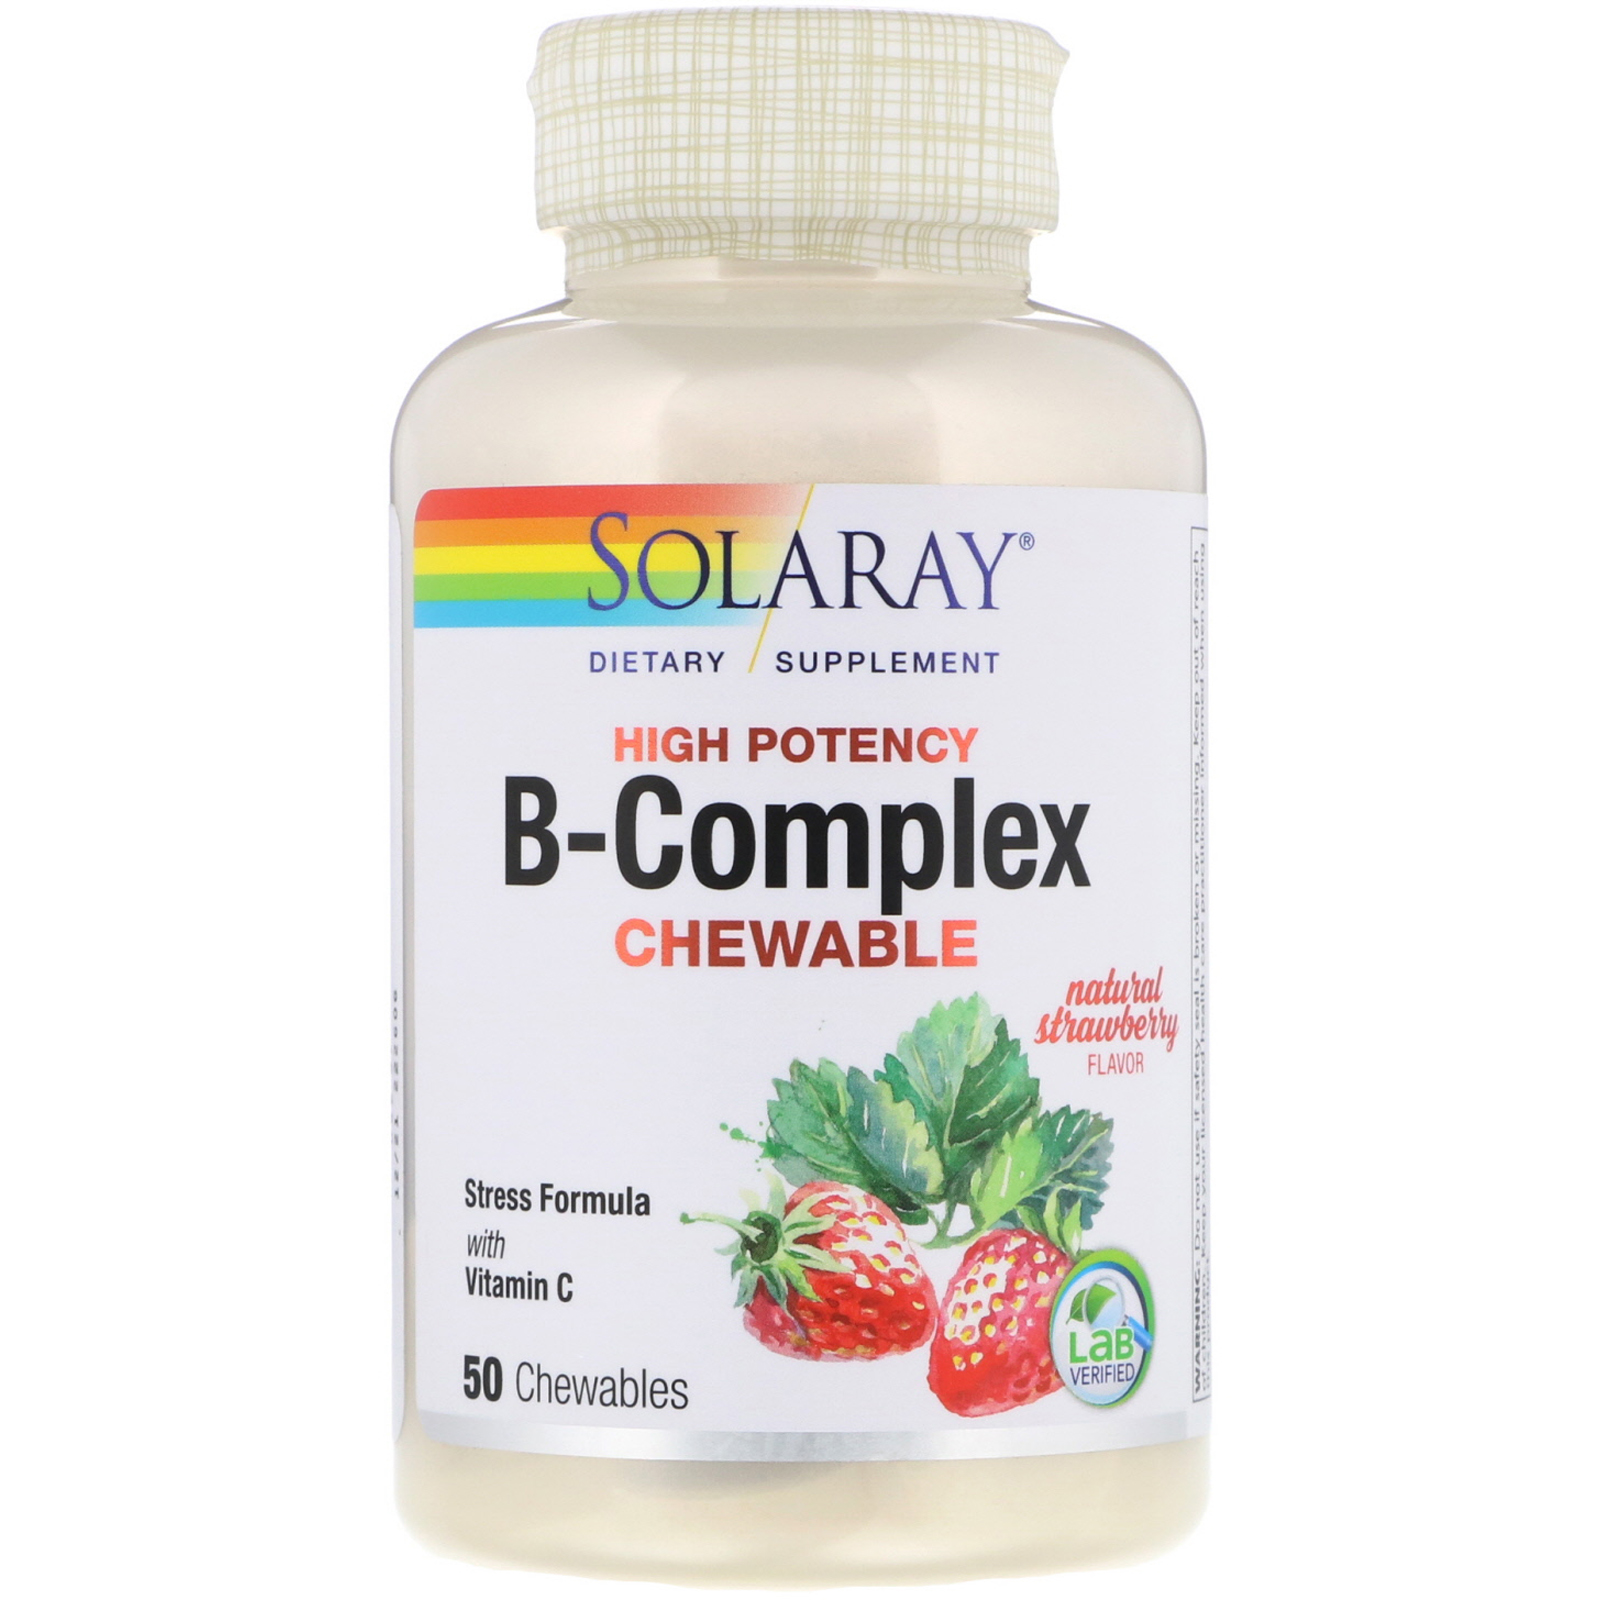 Solaray, High Potency B-Complex Chewable, Natural Strawberry